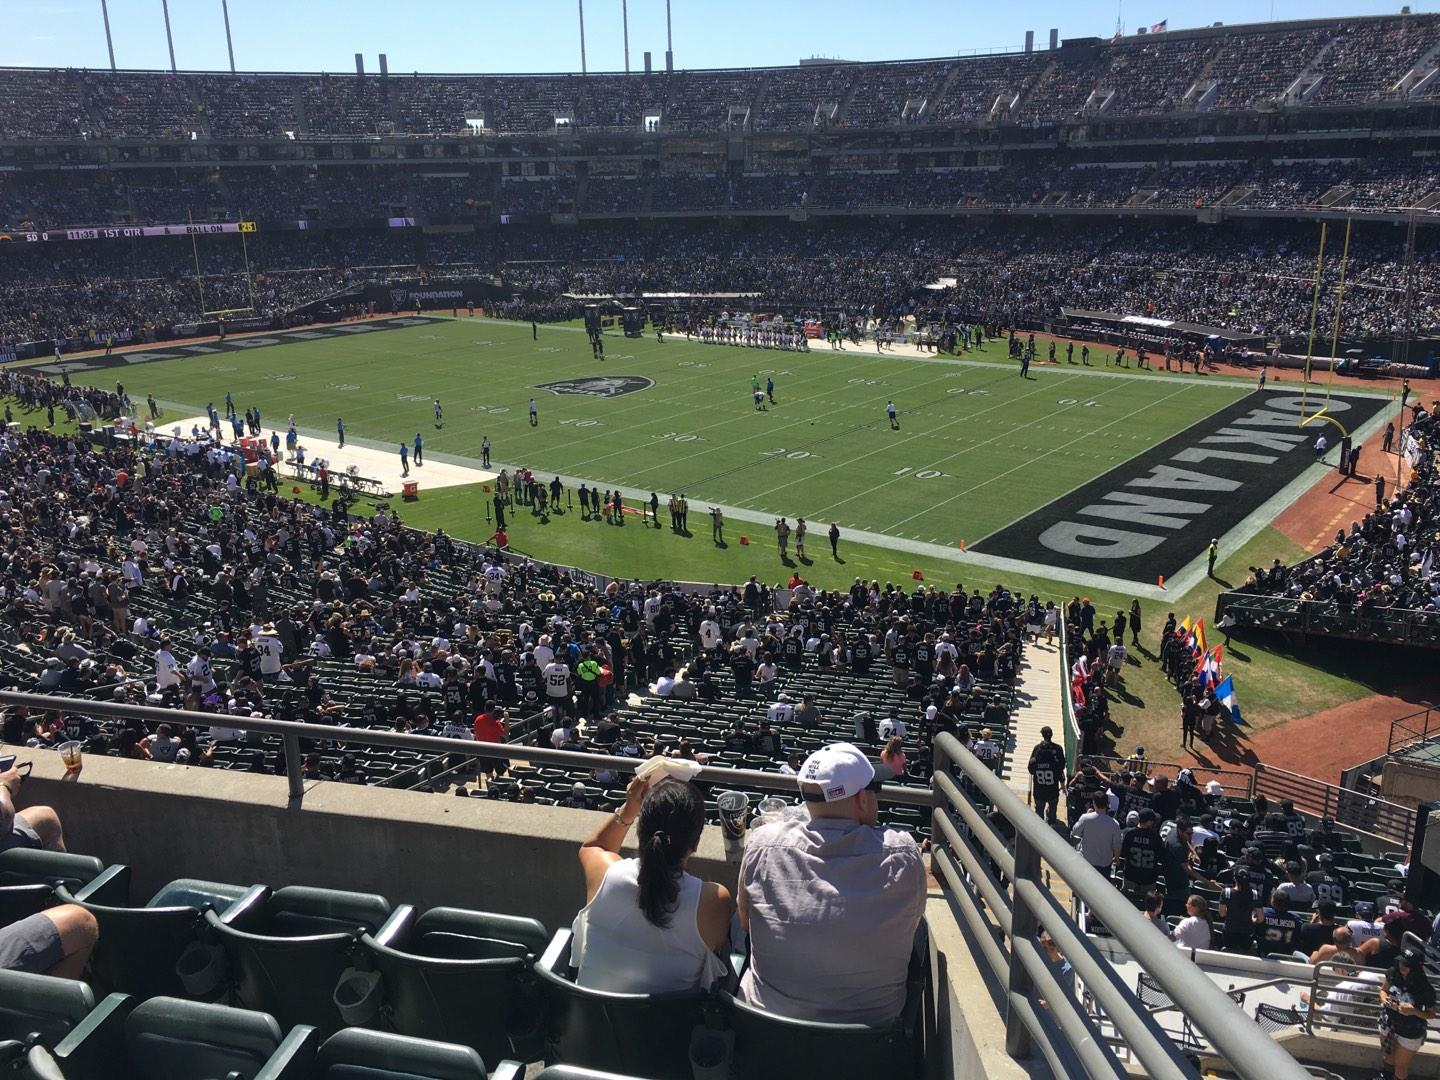 Oakland Alameda Coliseum Section 235 Row 5 Seat 1